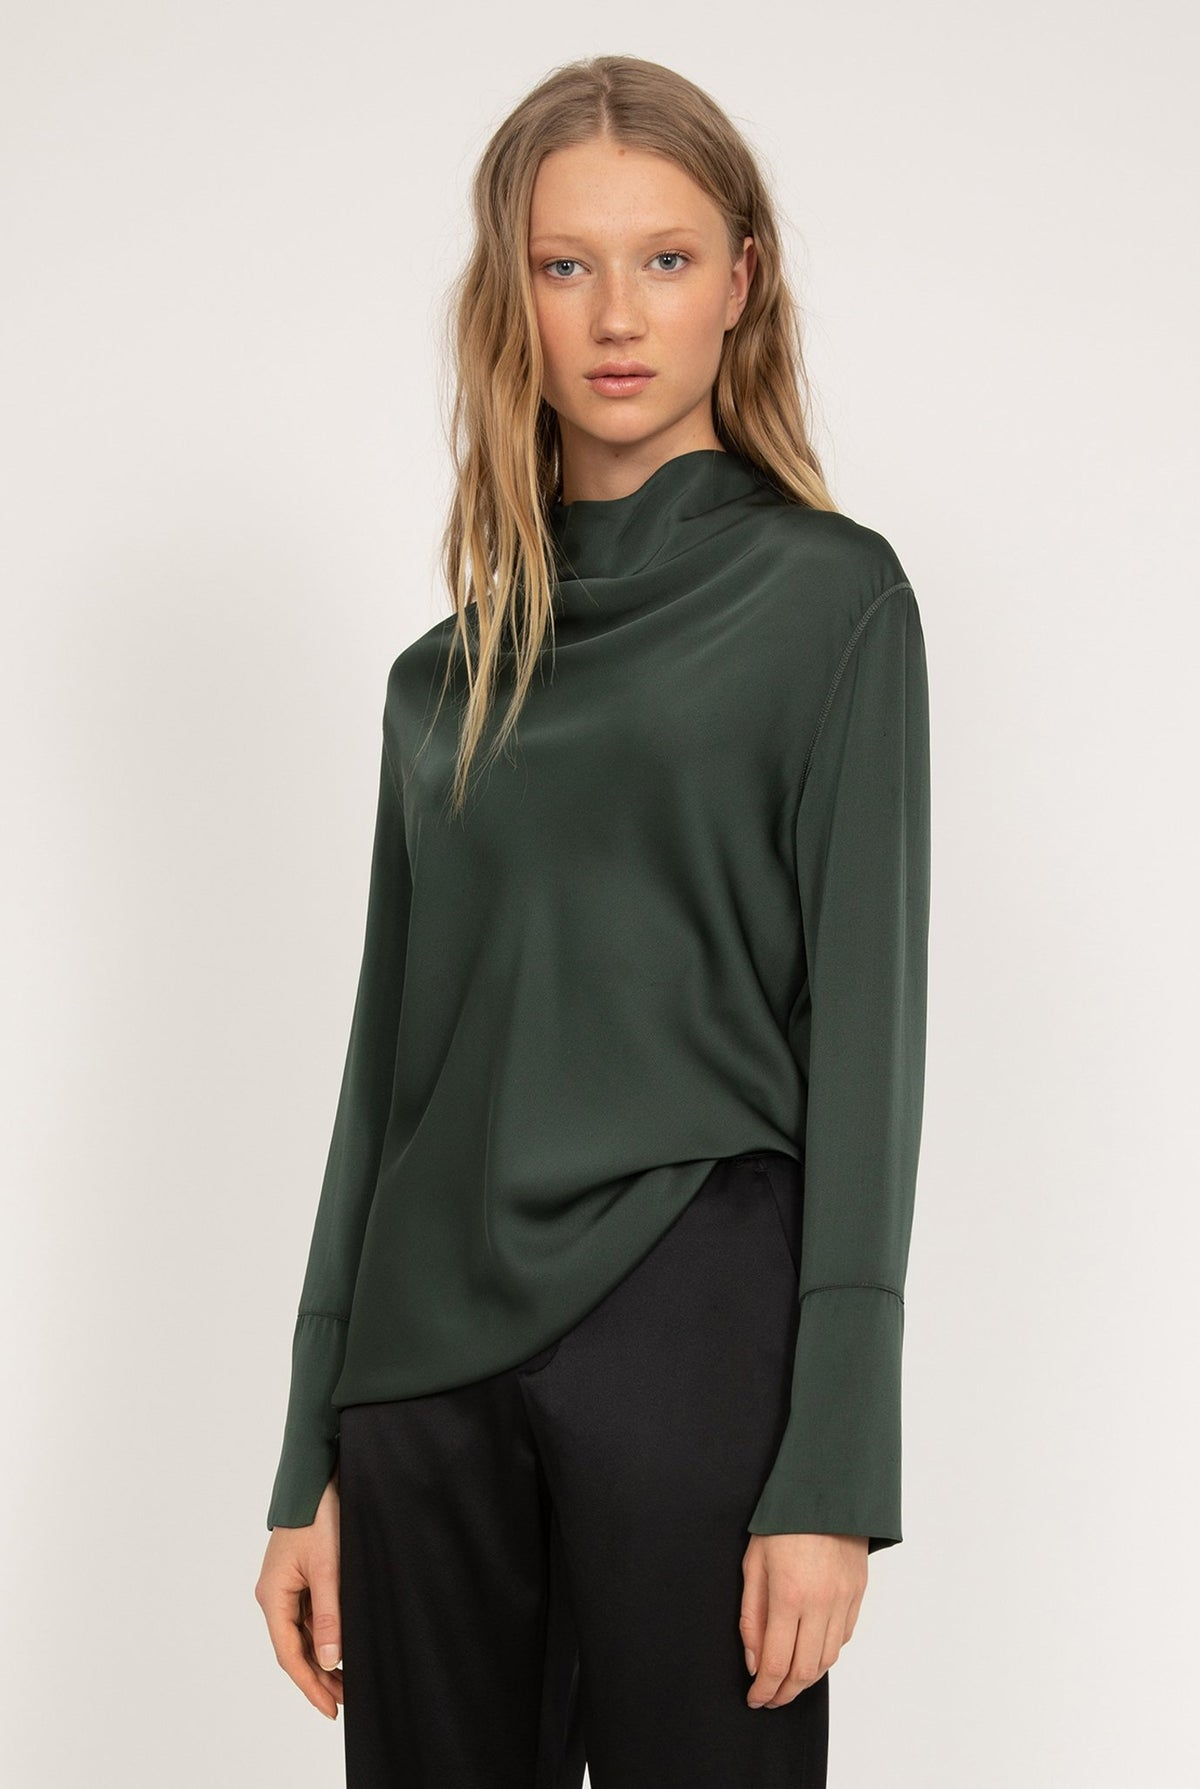 Ahlvar Gallery Ayumi Blouse in Military Green with long sleeves and a draped, bias-cut front.